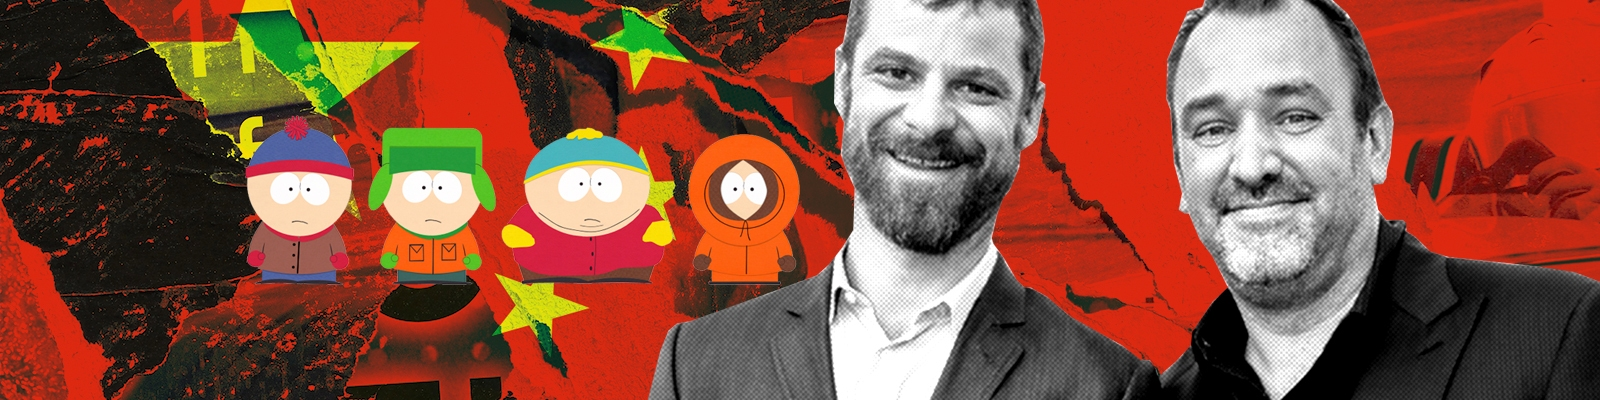 Trey Parker And Matt Stone Are Still The Bravest Creative Minds In Television